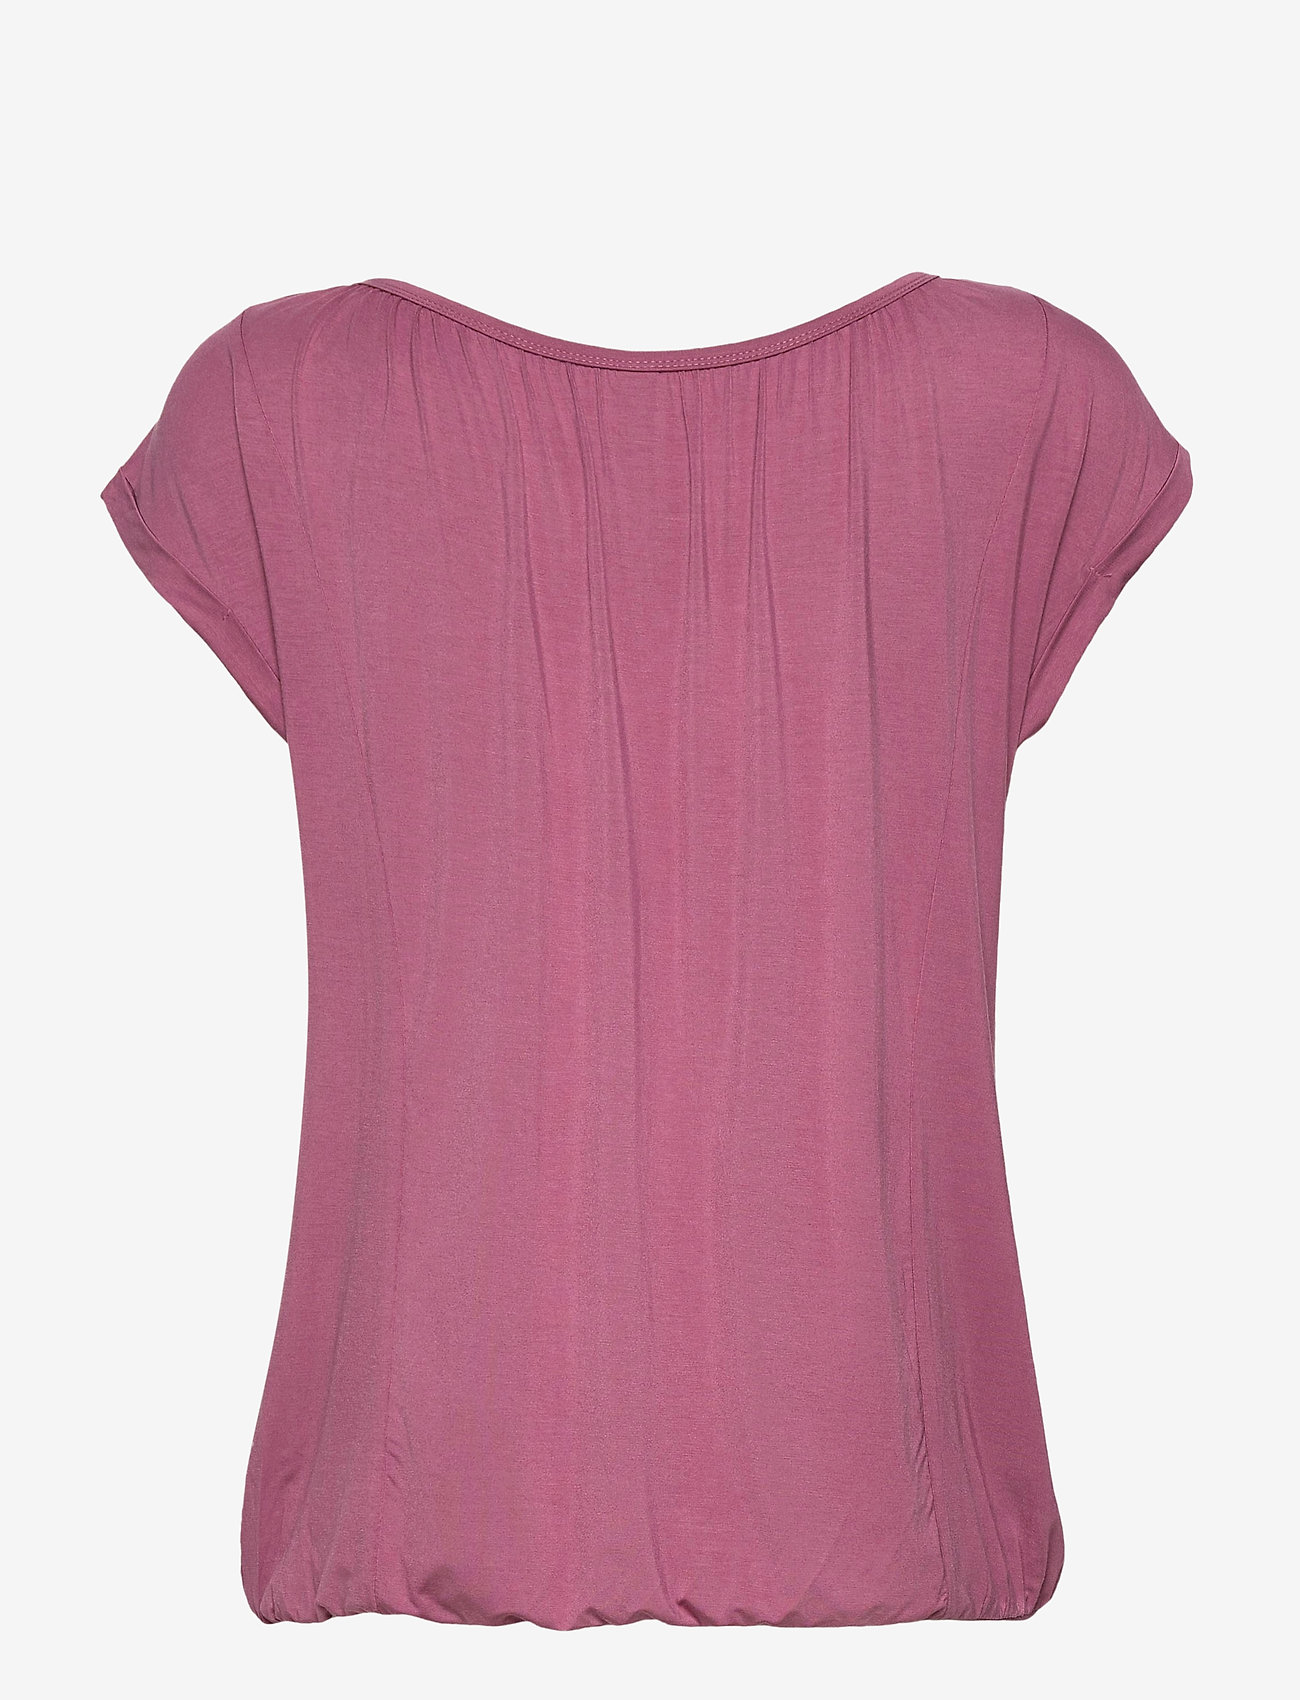 Soyaconcept - SC-MARICA - t-shirts - dark pink rose - 1